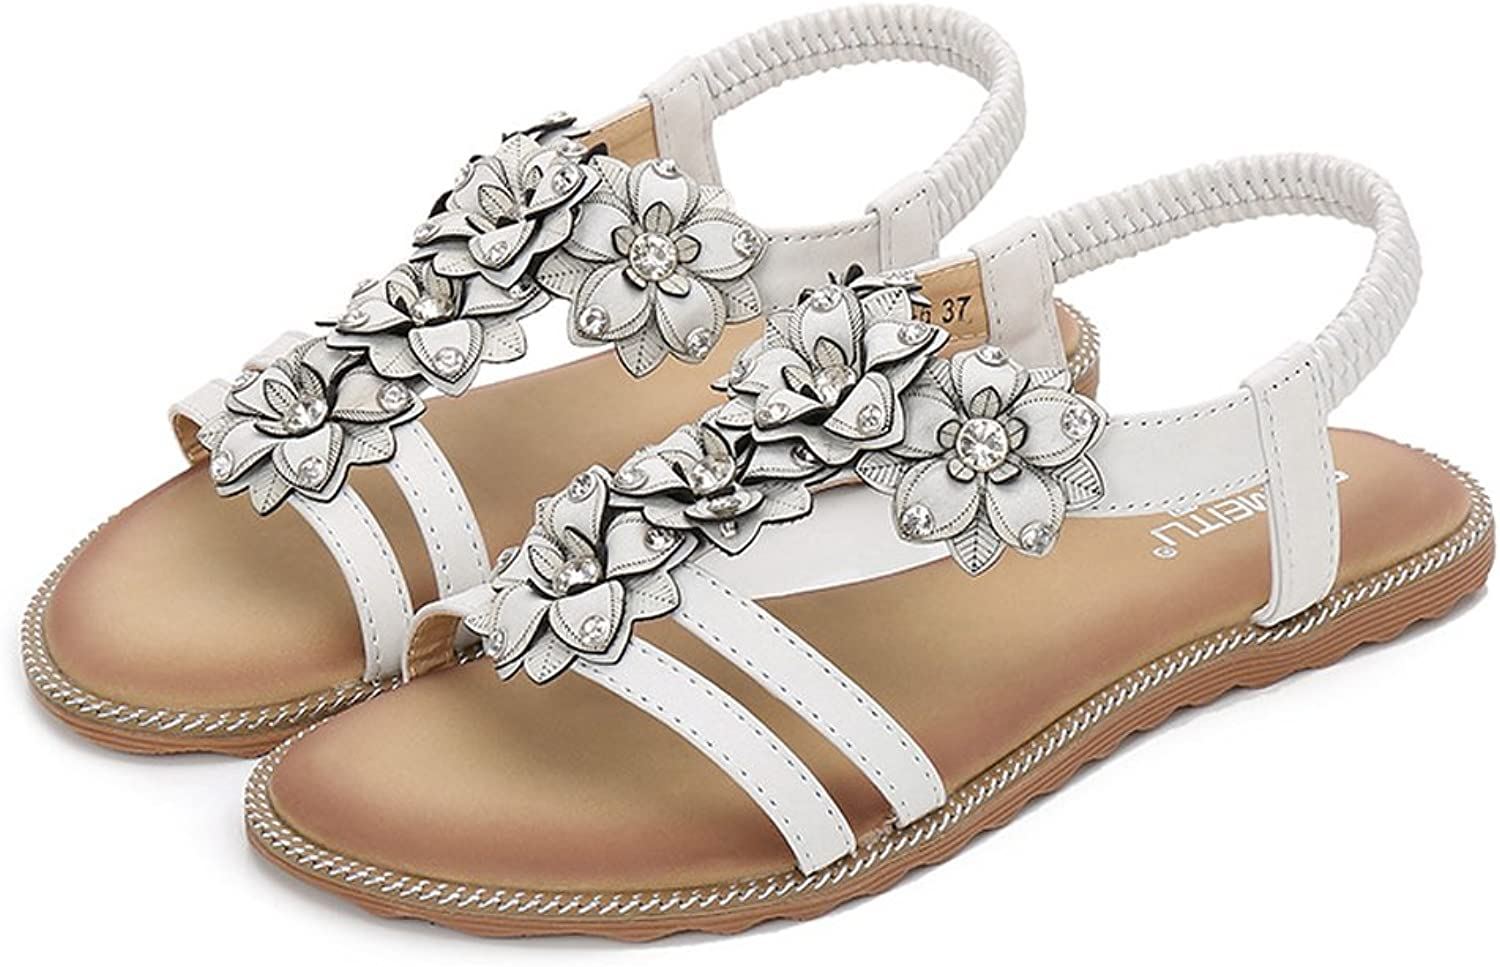 Tuoup Women's Flat Leather Flowers Casual Ladies Sandals Sandles